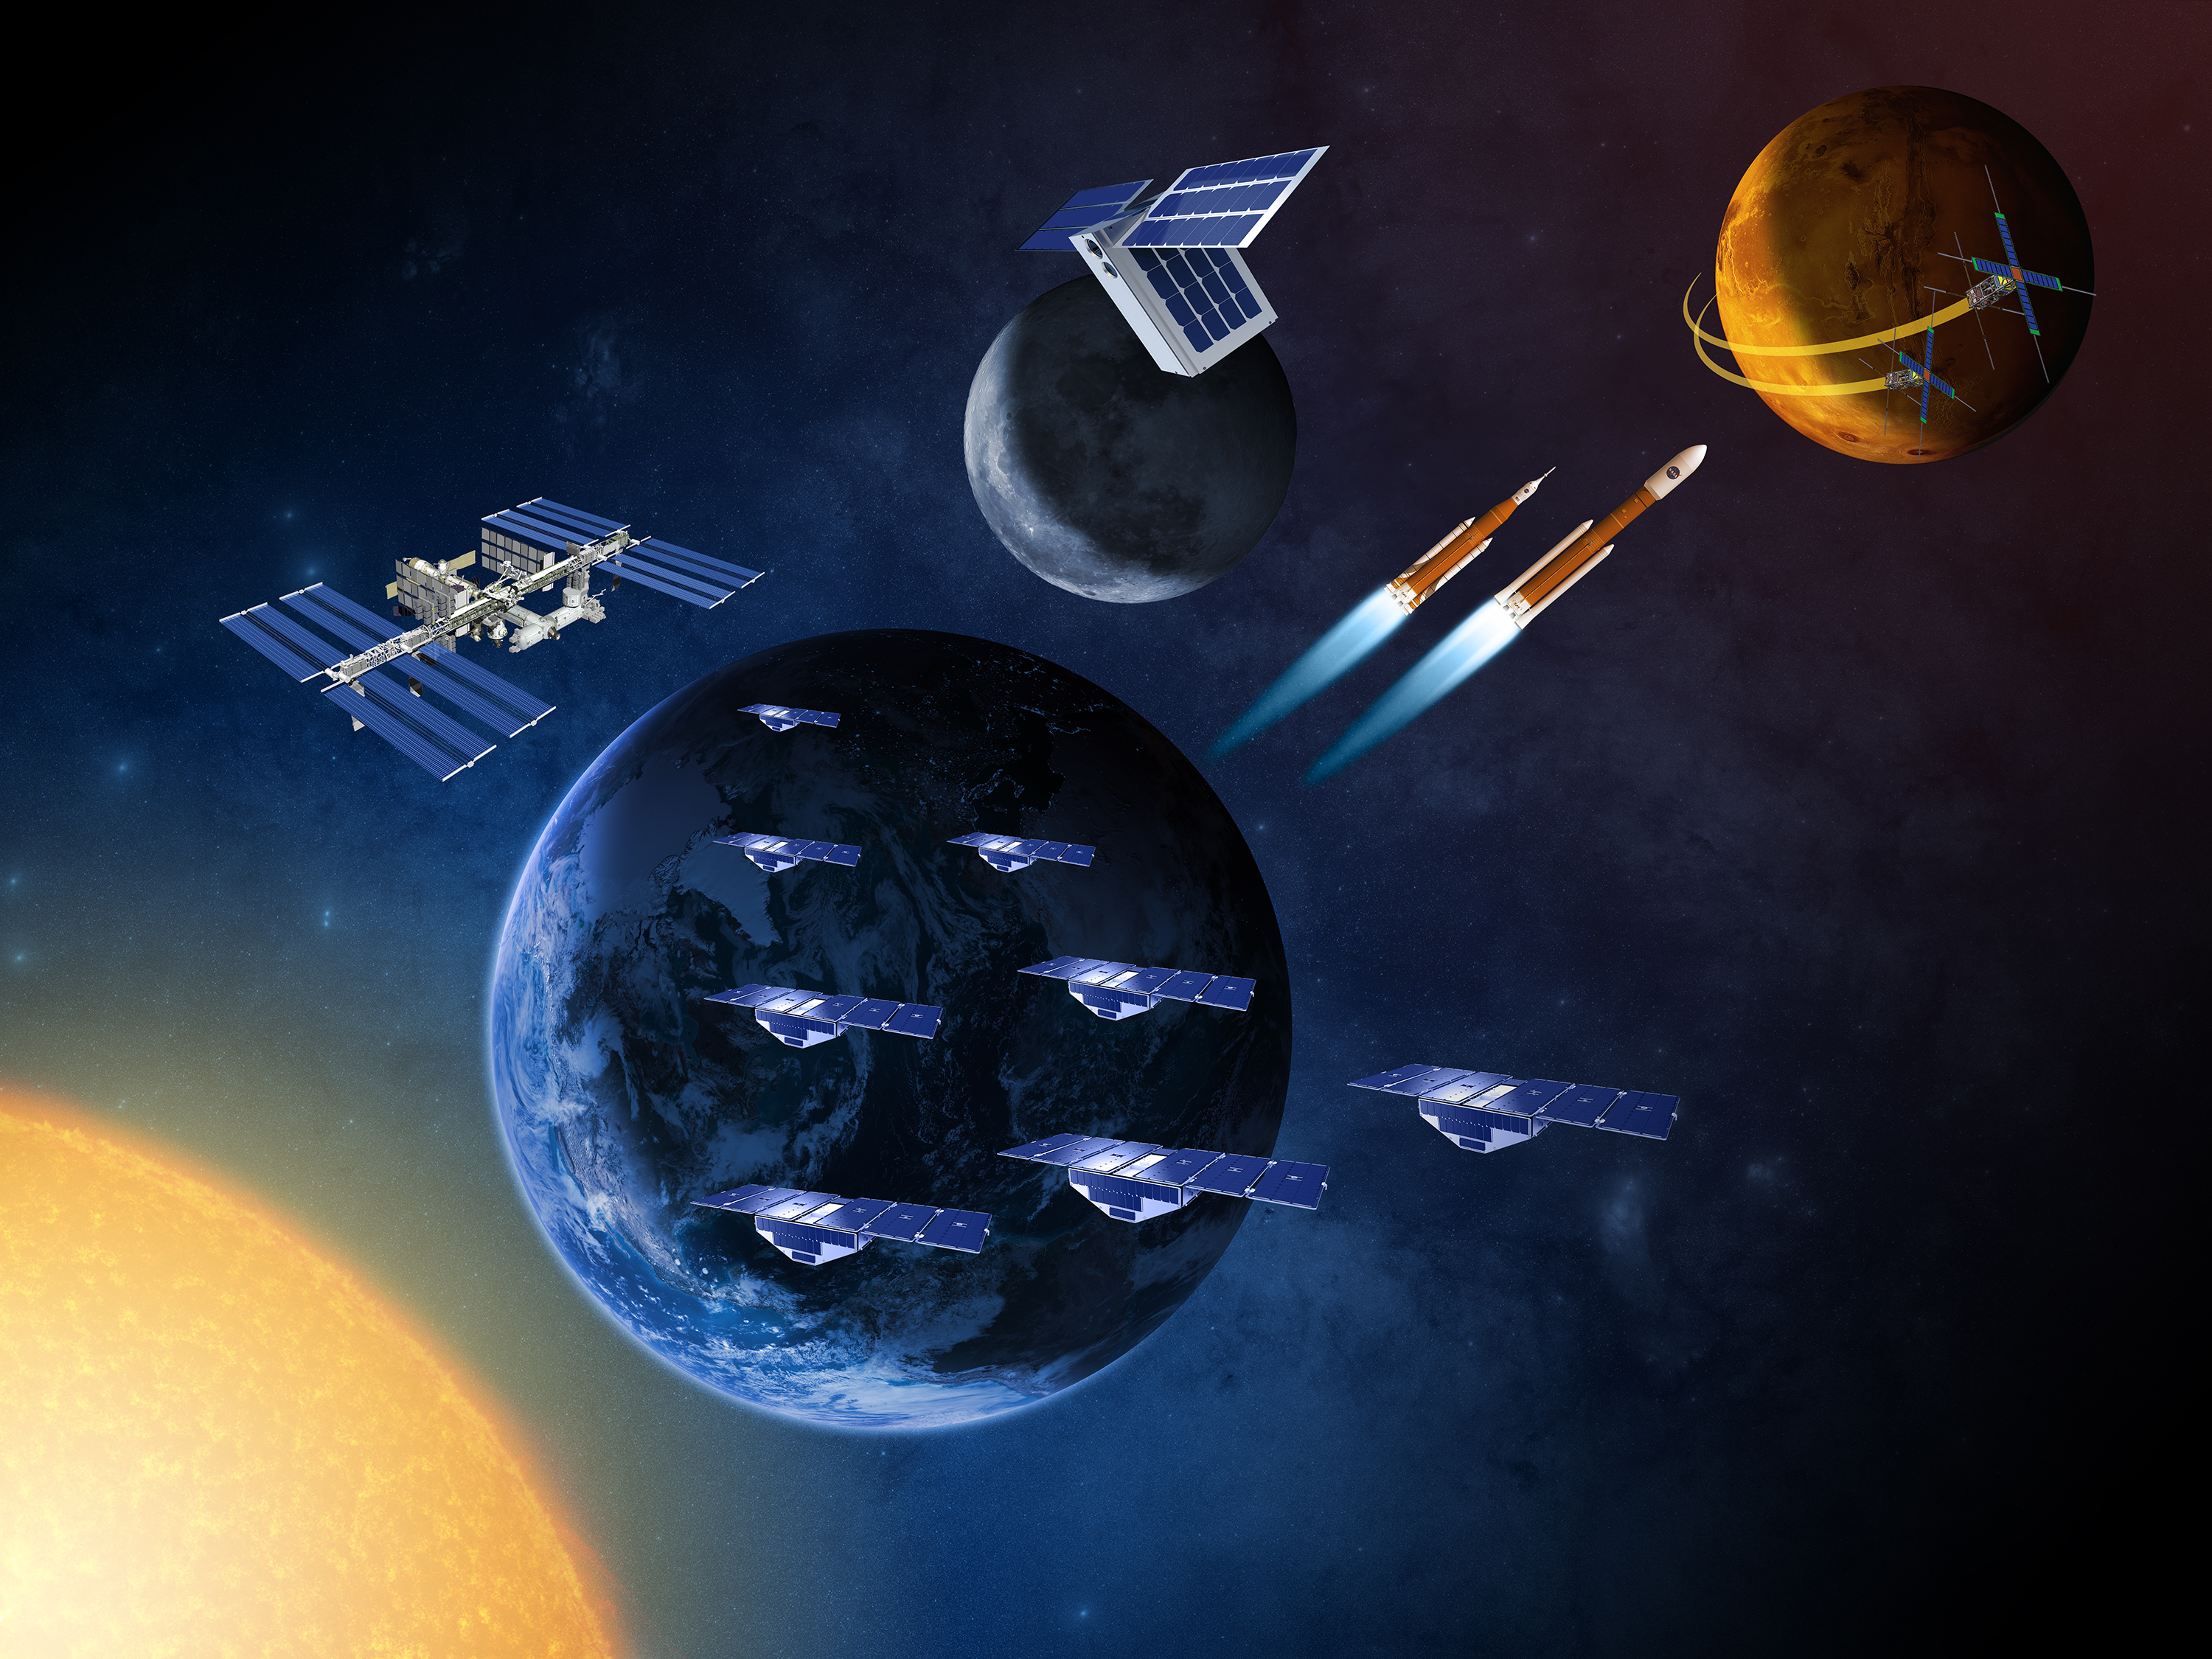 NASA to Hold Media Call on New Small Satellite Missions to ...